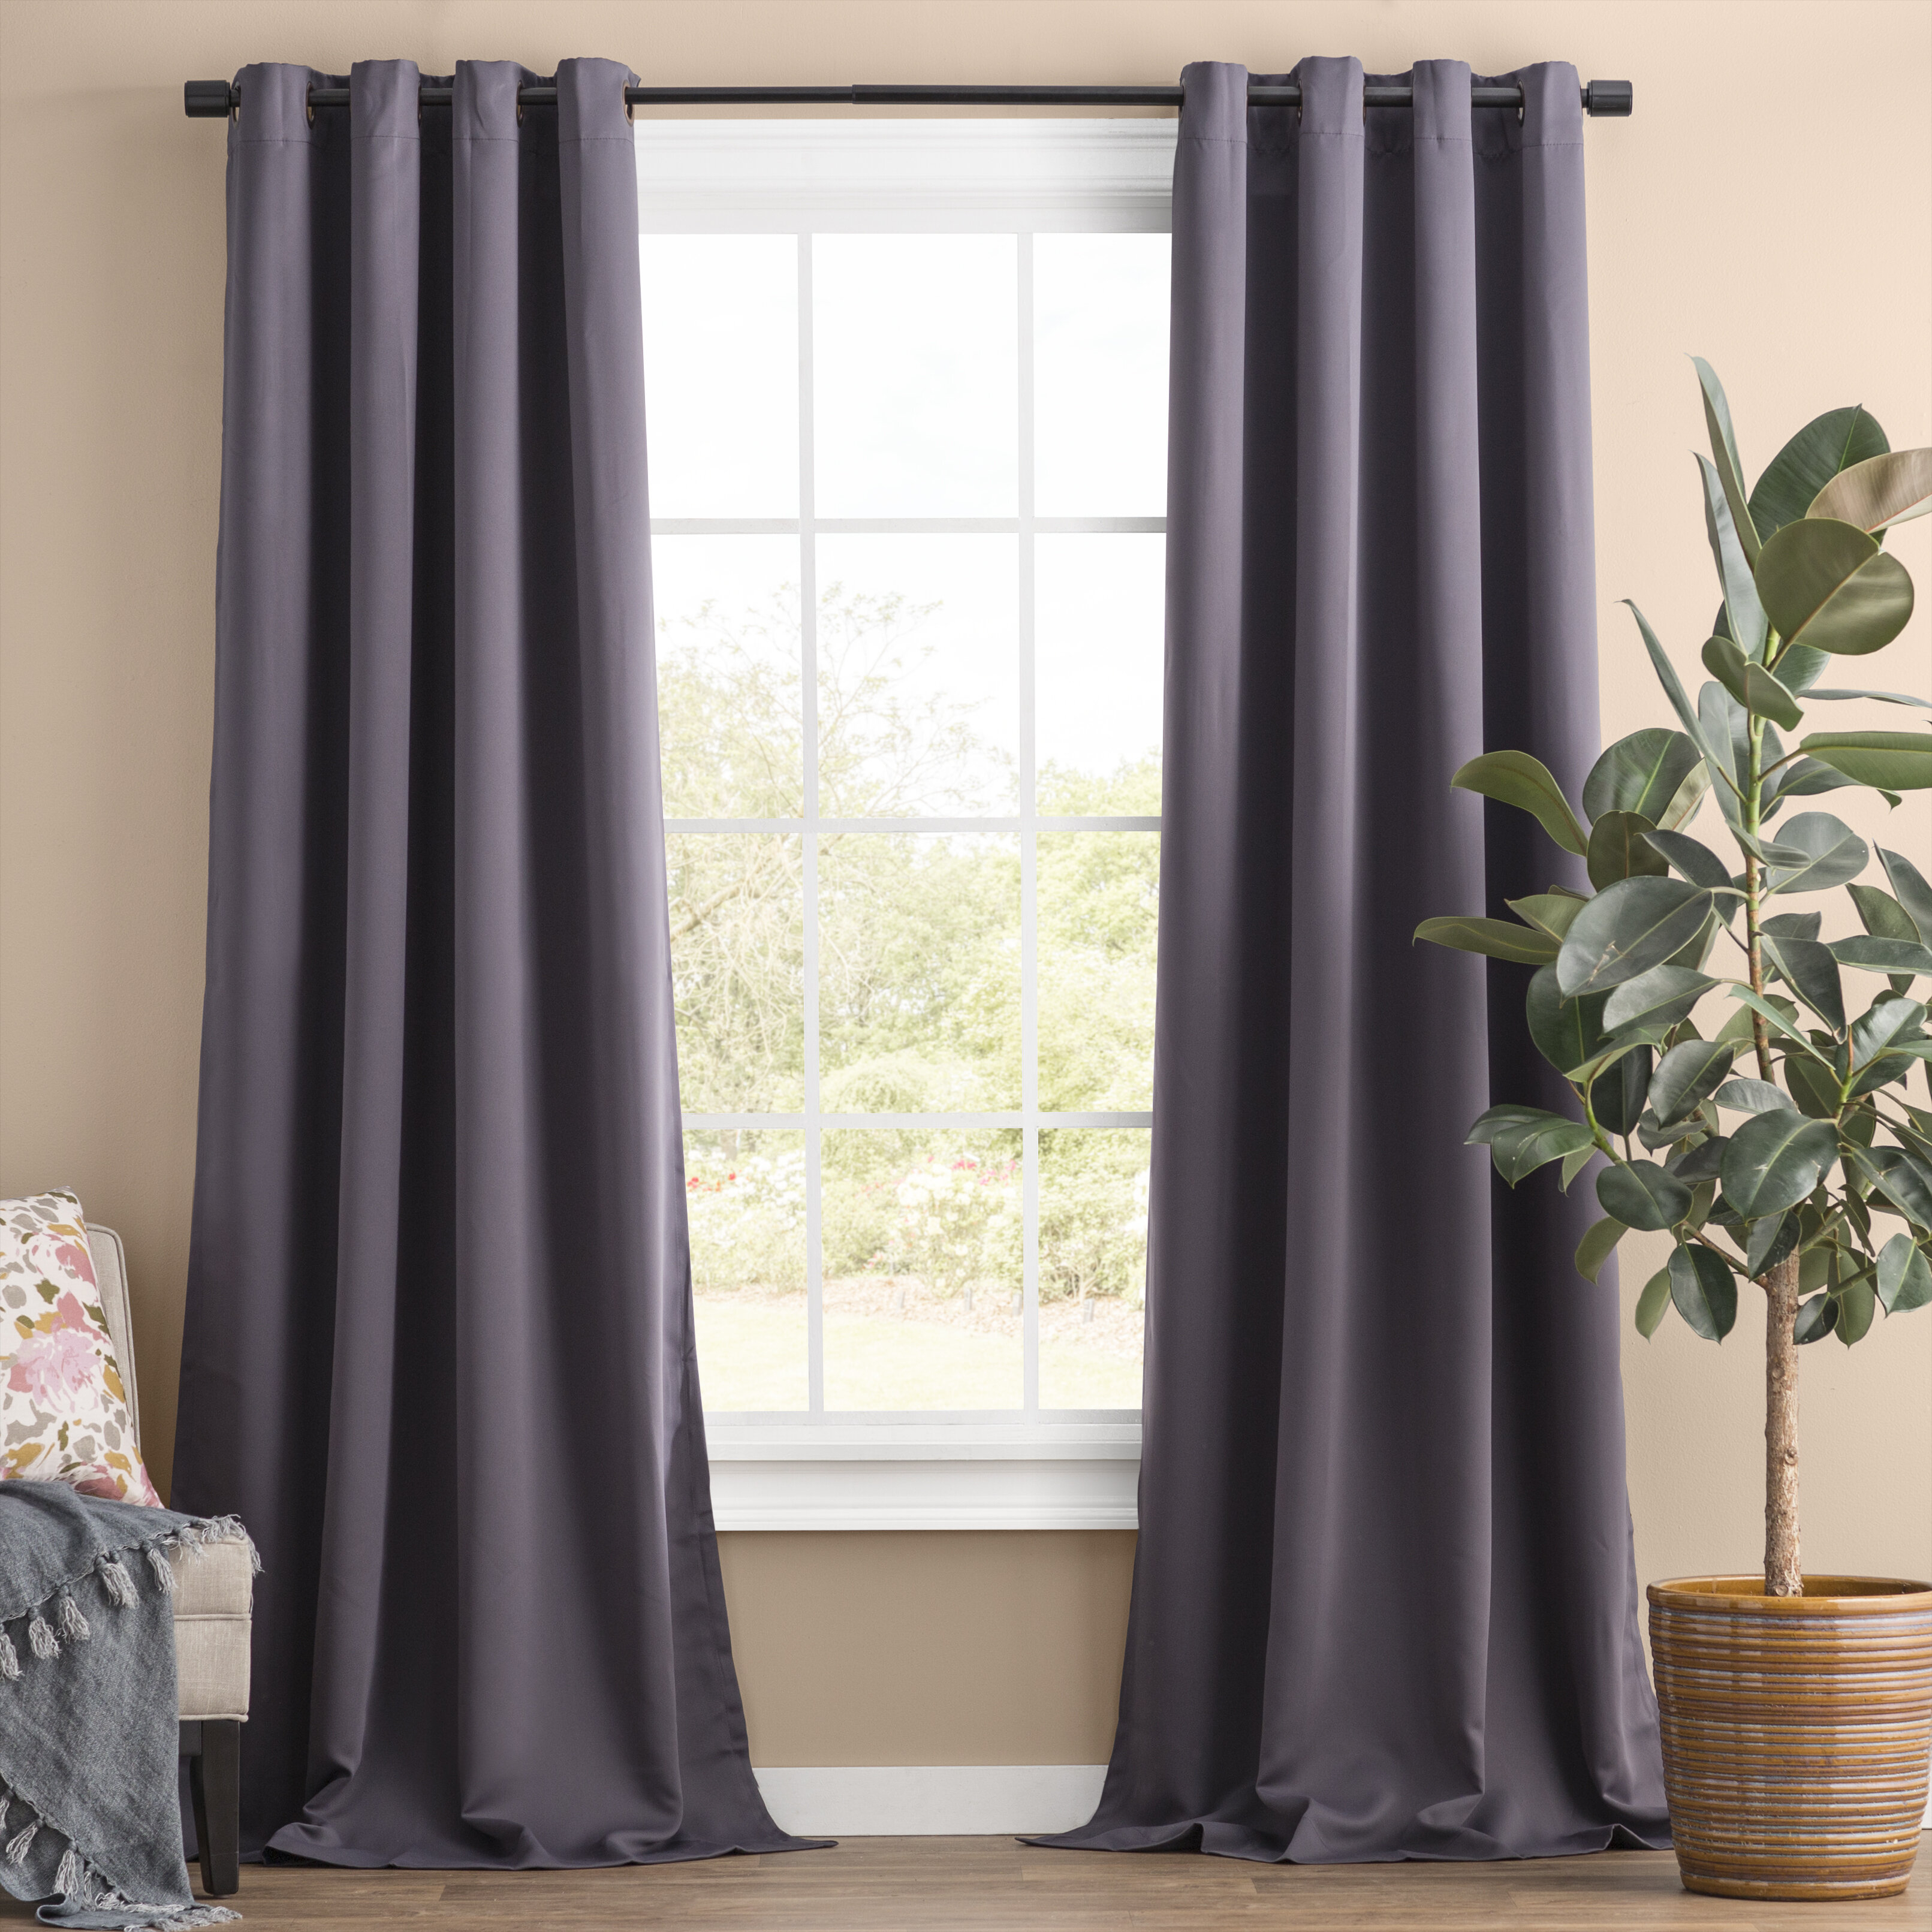 Solid Blackout Thermal Grommet Curtain Panels Inside Thermal Textured Linen Grommet Top Curtain Panel Pairs (View 21 of 30)